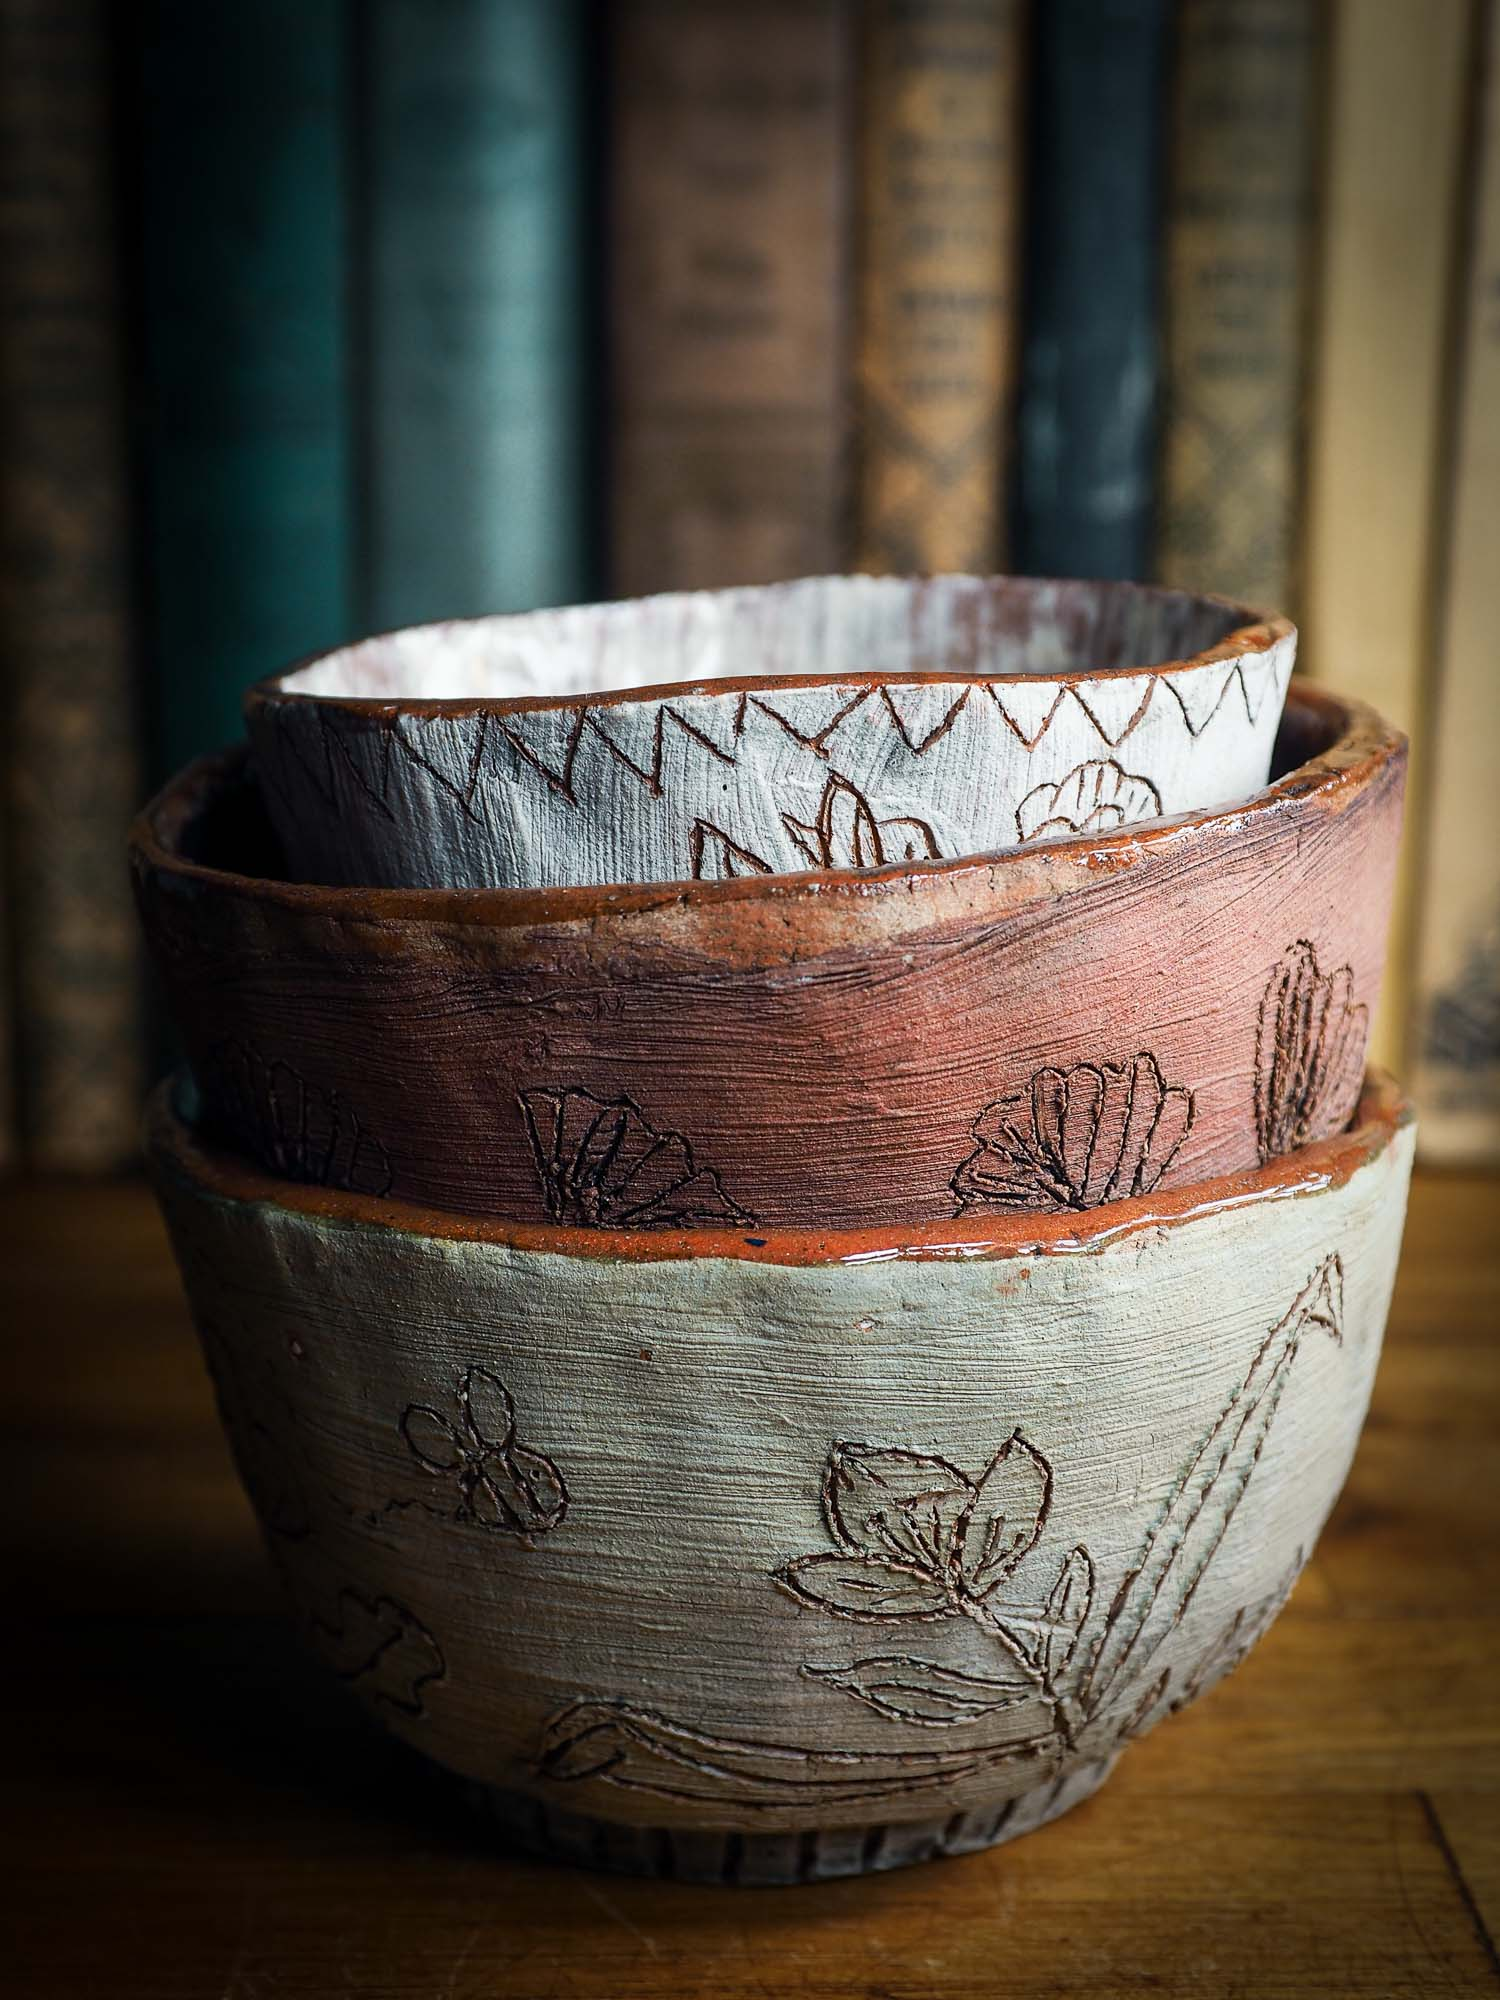 An original Idania Salcido Danita Art pinched ceramic cat pet food bowl. Handmade from locally foraged clay, this glazed ceramics one of a kind artwork is perfect for any kitchen plate and bowls unique collection. Thumbprints and  intentionally irregular shape give the bowl a cozy, warmly familiar feel when you pick it.